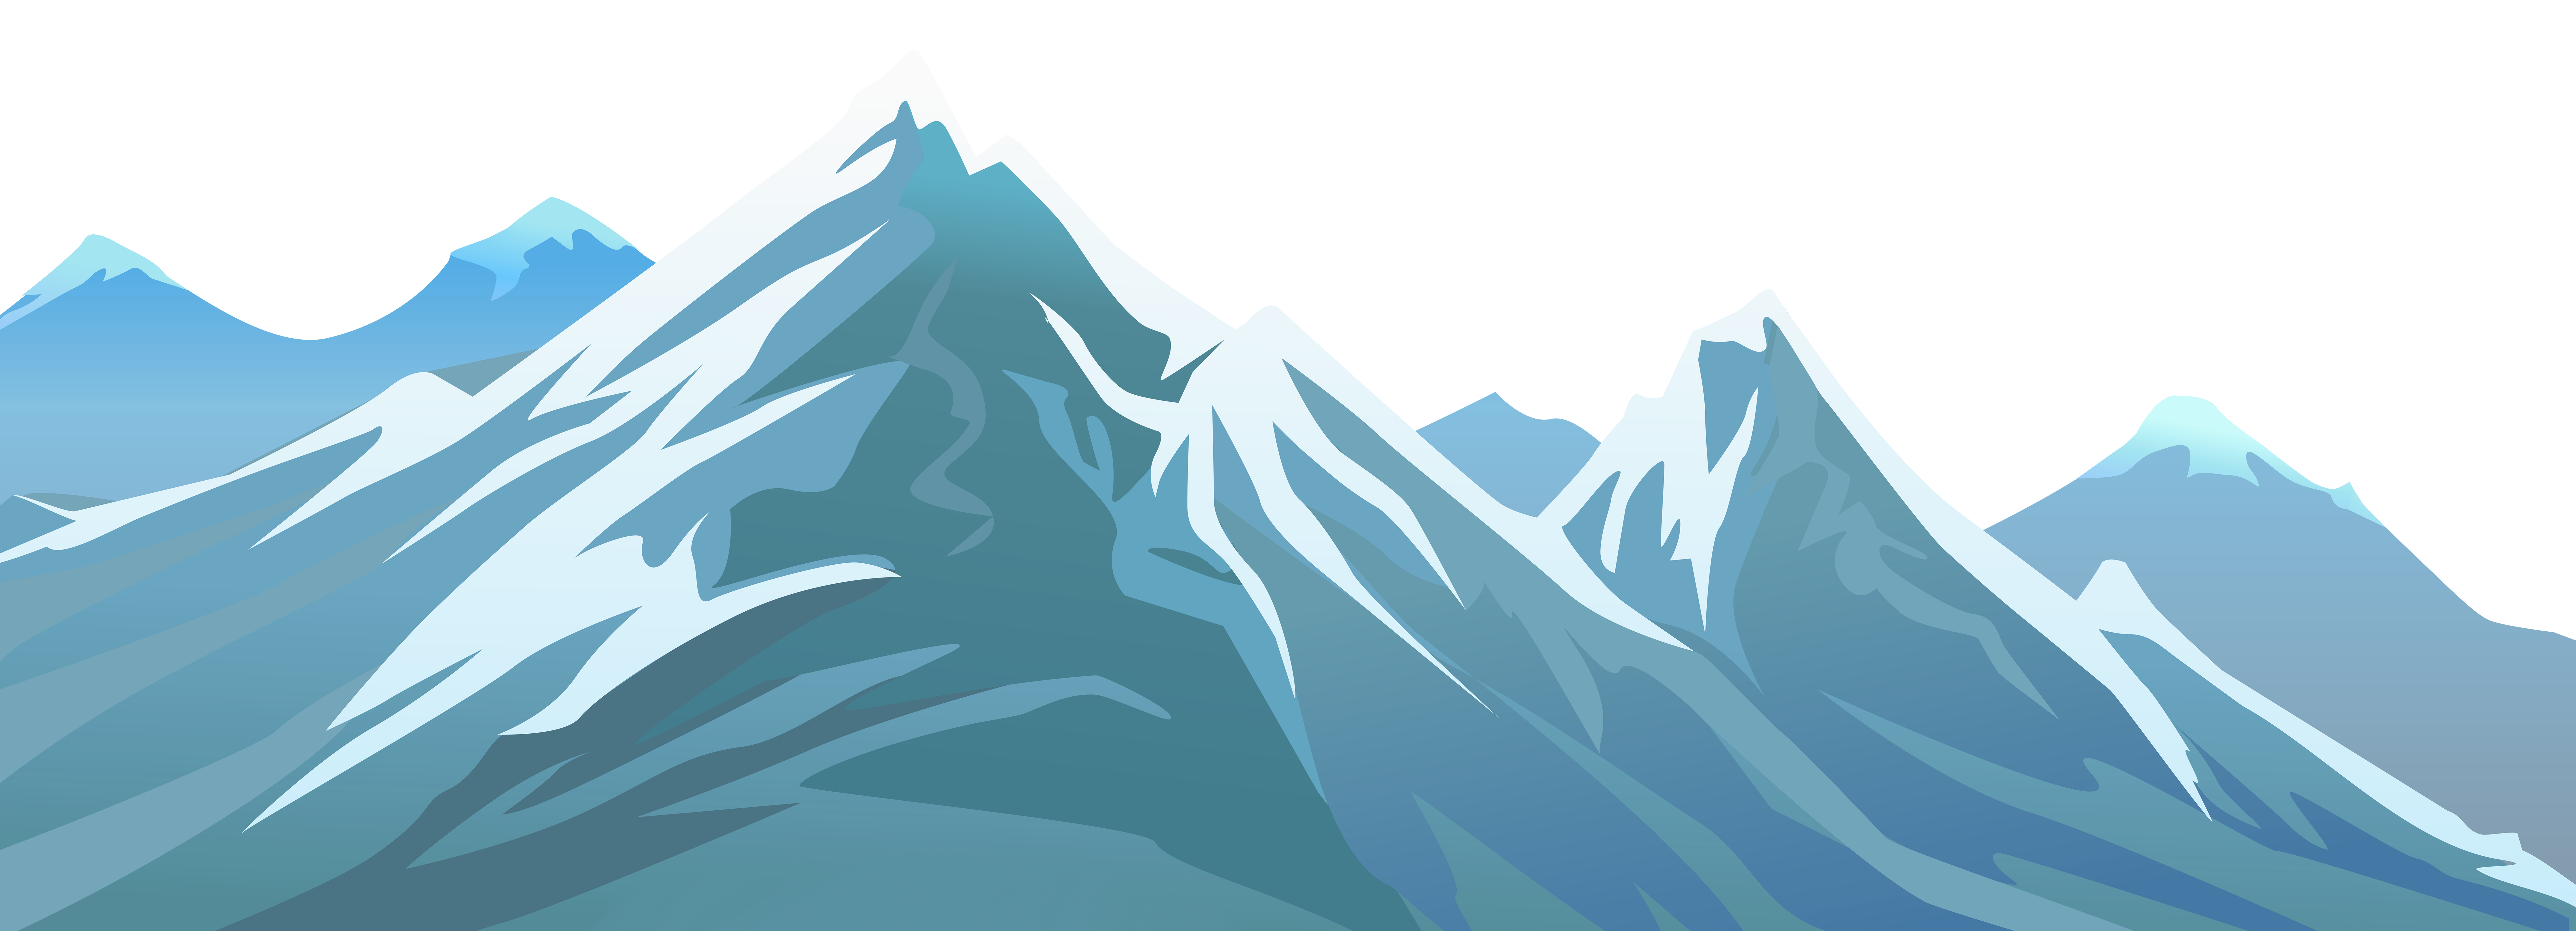 Clipart mountains terrain. Mountain clip art snowy